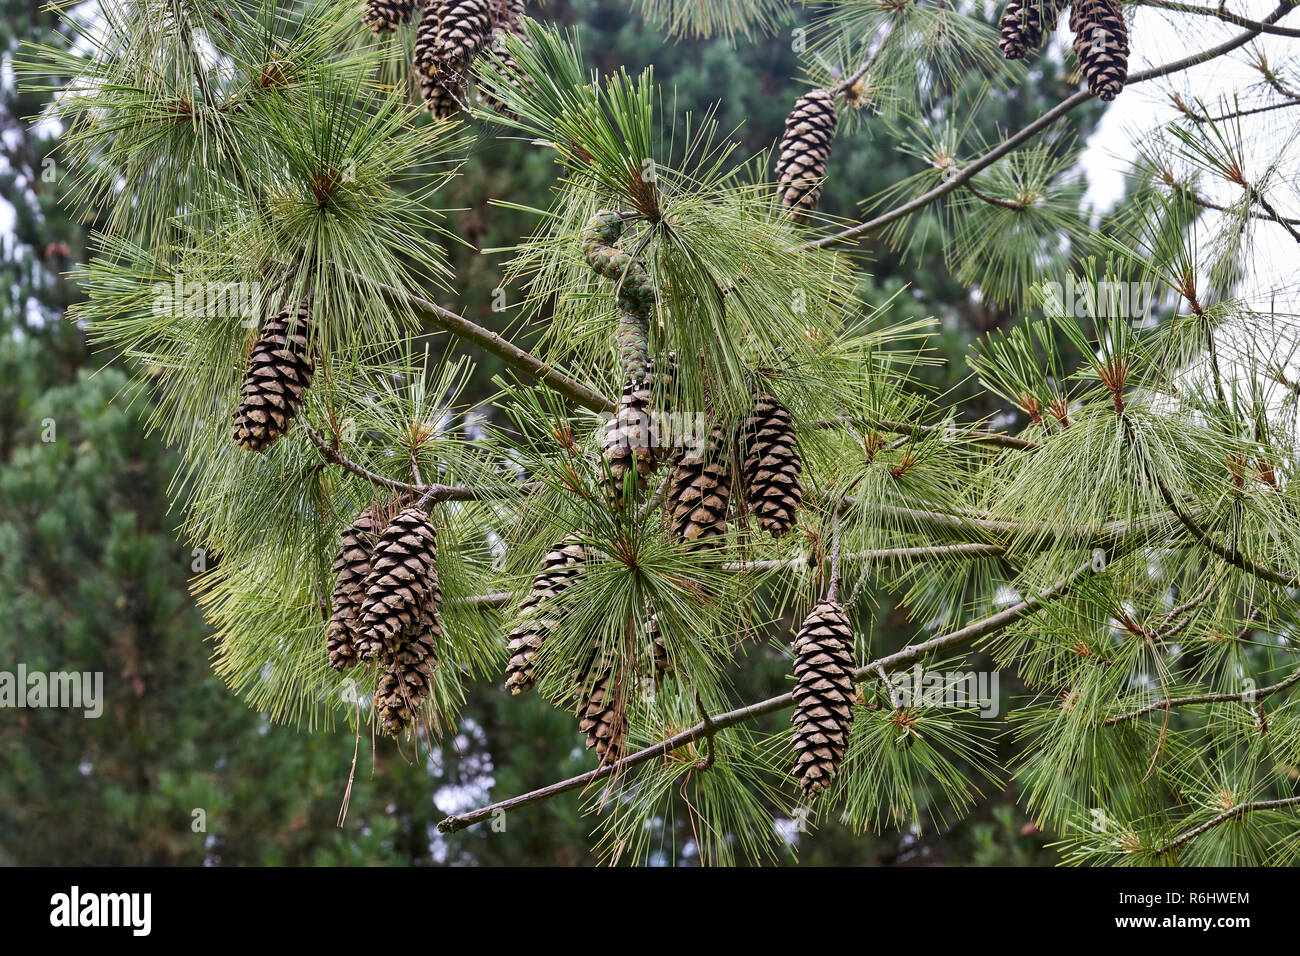 Himalayan Pine, Pinus wallichiana - mature open pine cones, brown and dry - Stock Image